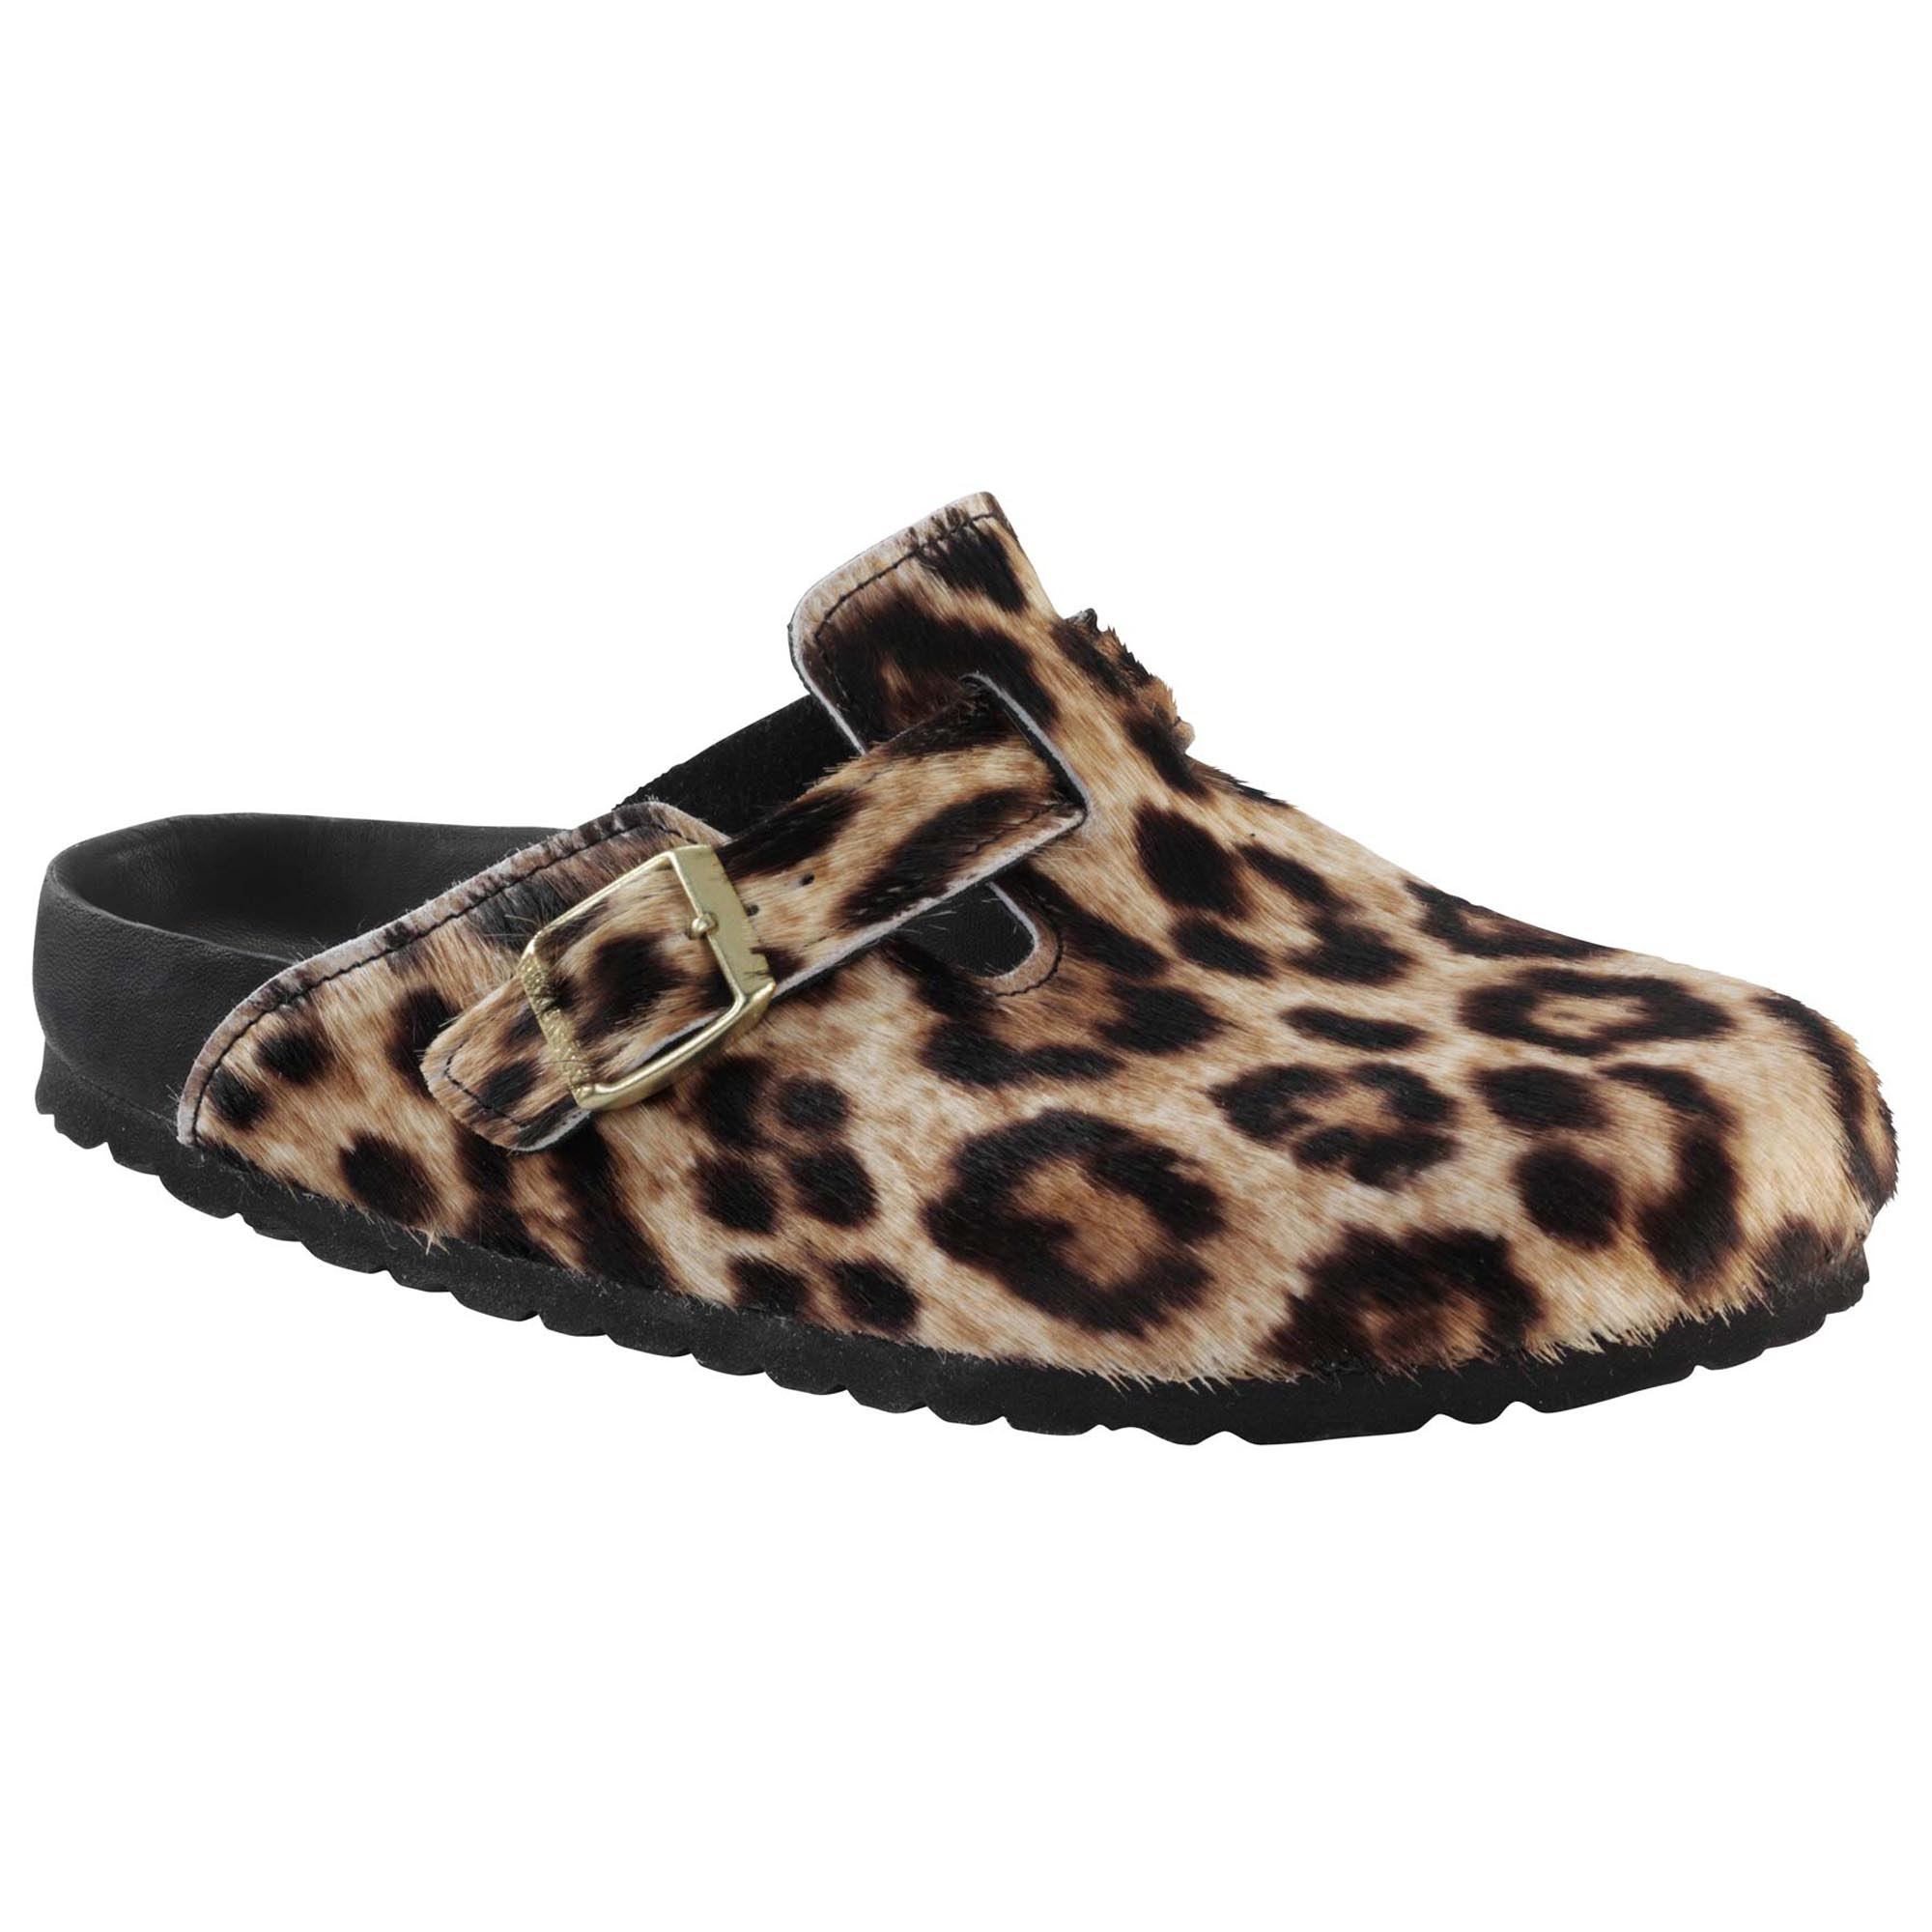 Bronze Leopard print calf hair snow